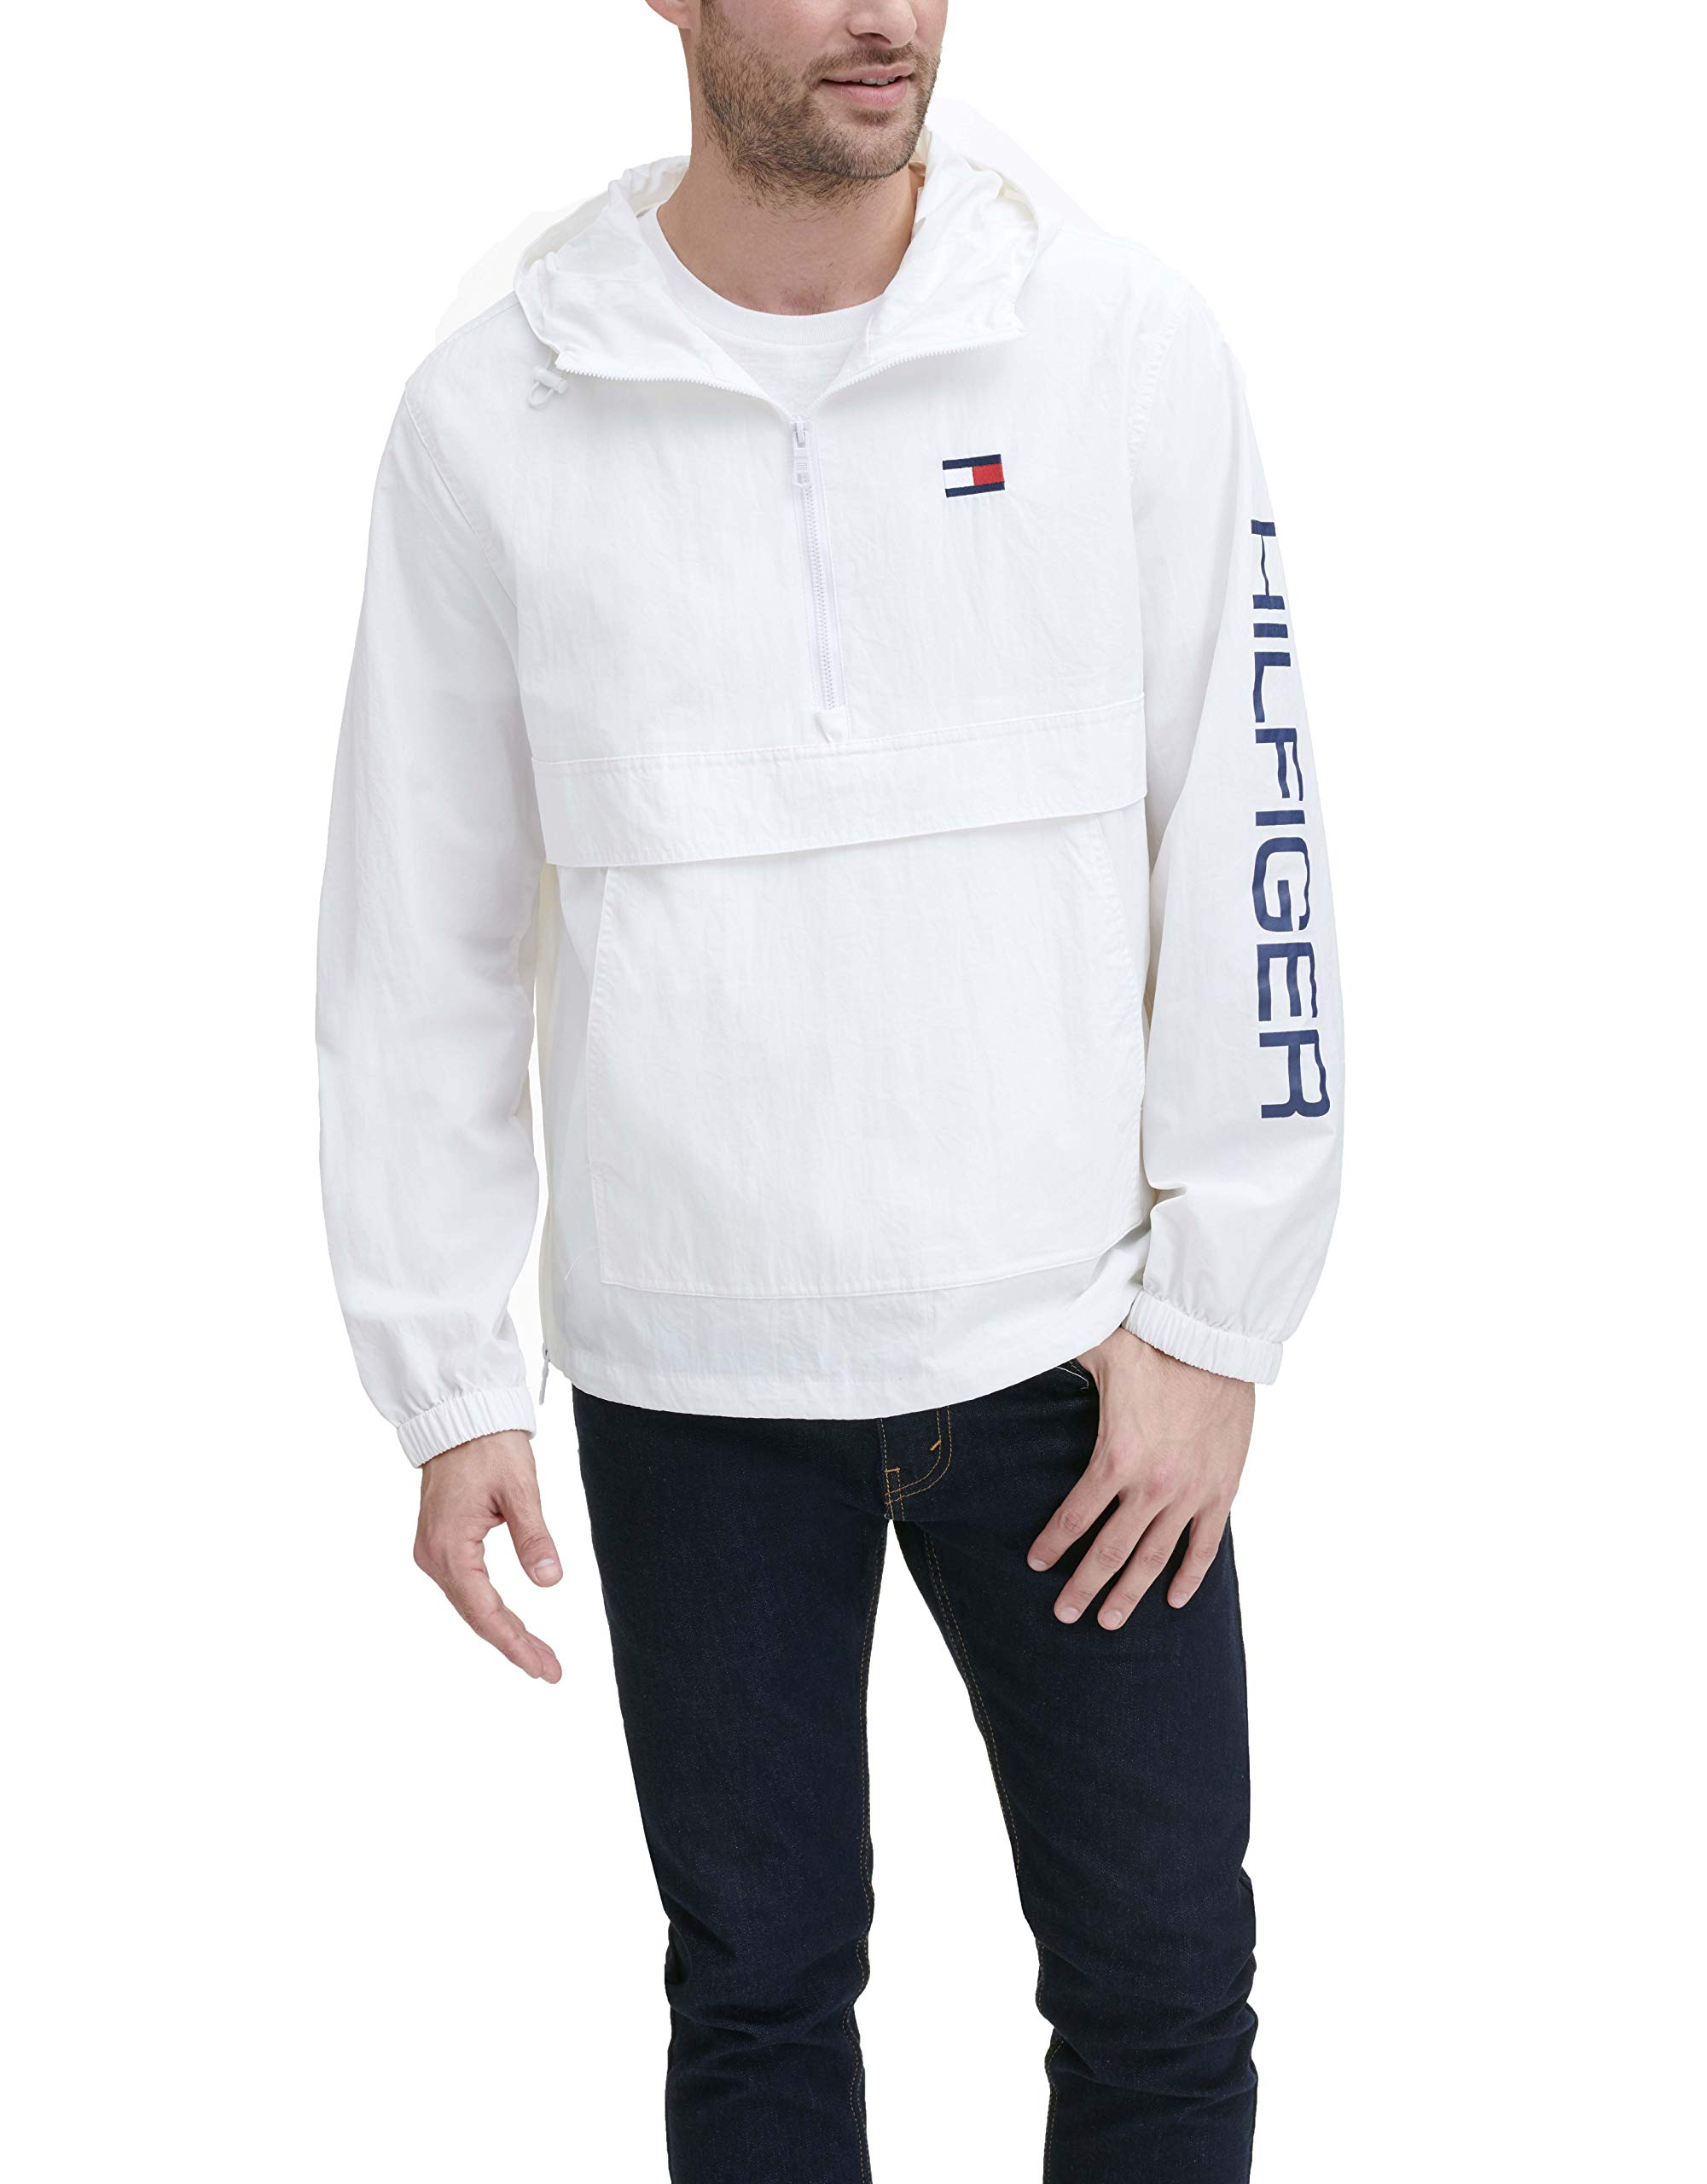 Tommy Hilfiger Men's Retro Lightweight Taslan Popover Jacket, white, Small by Tommy Hilfiger